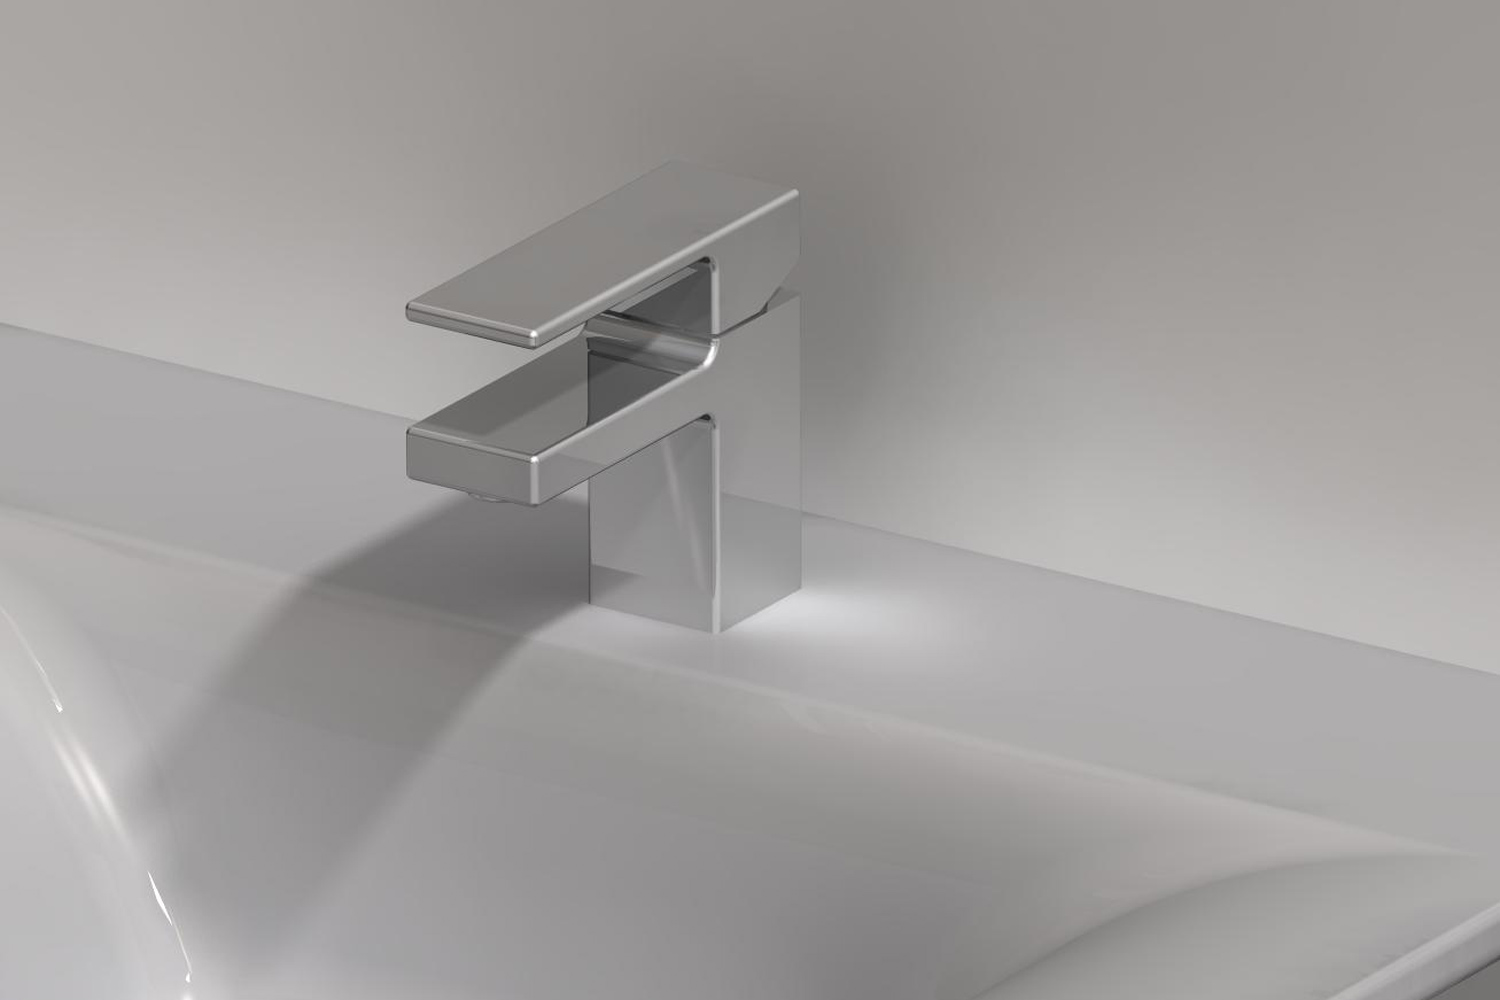 lavatory faucet product projects mikiya kobayashi